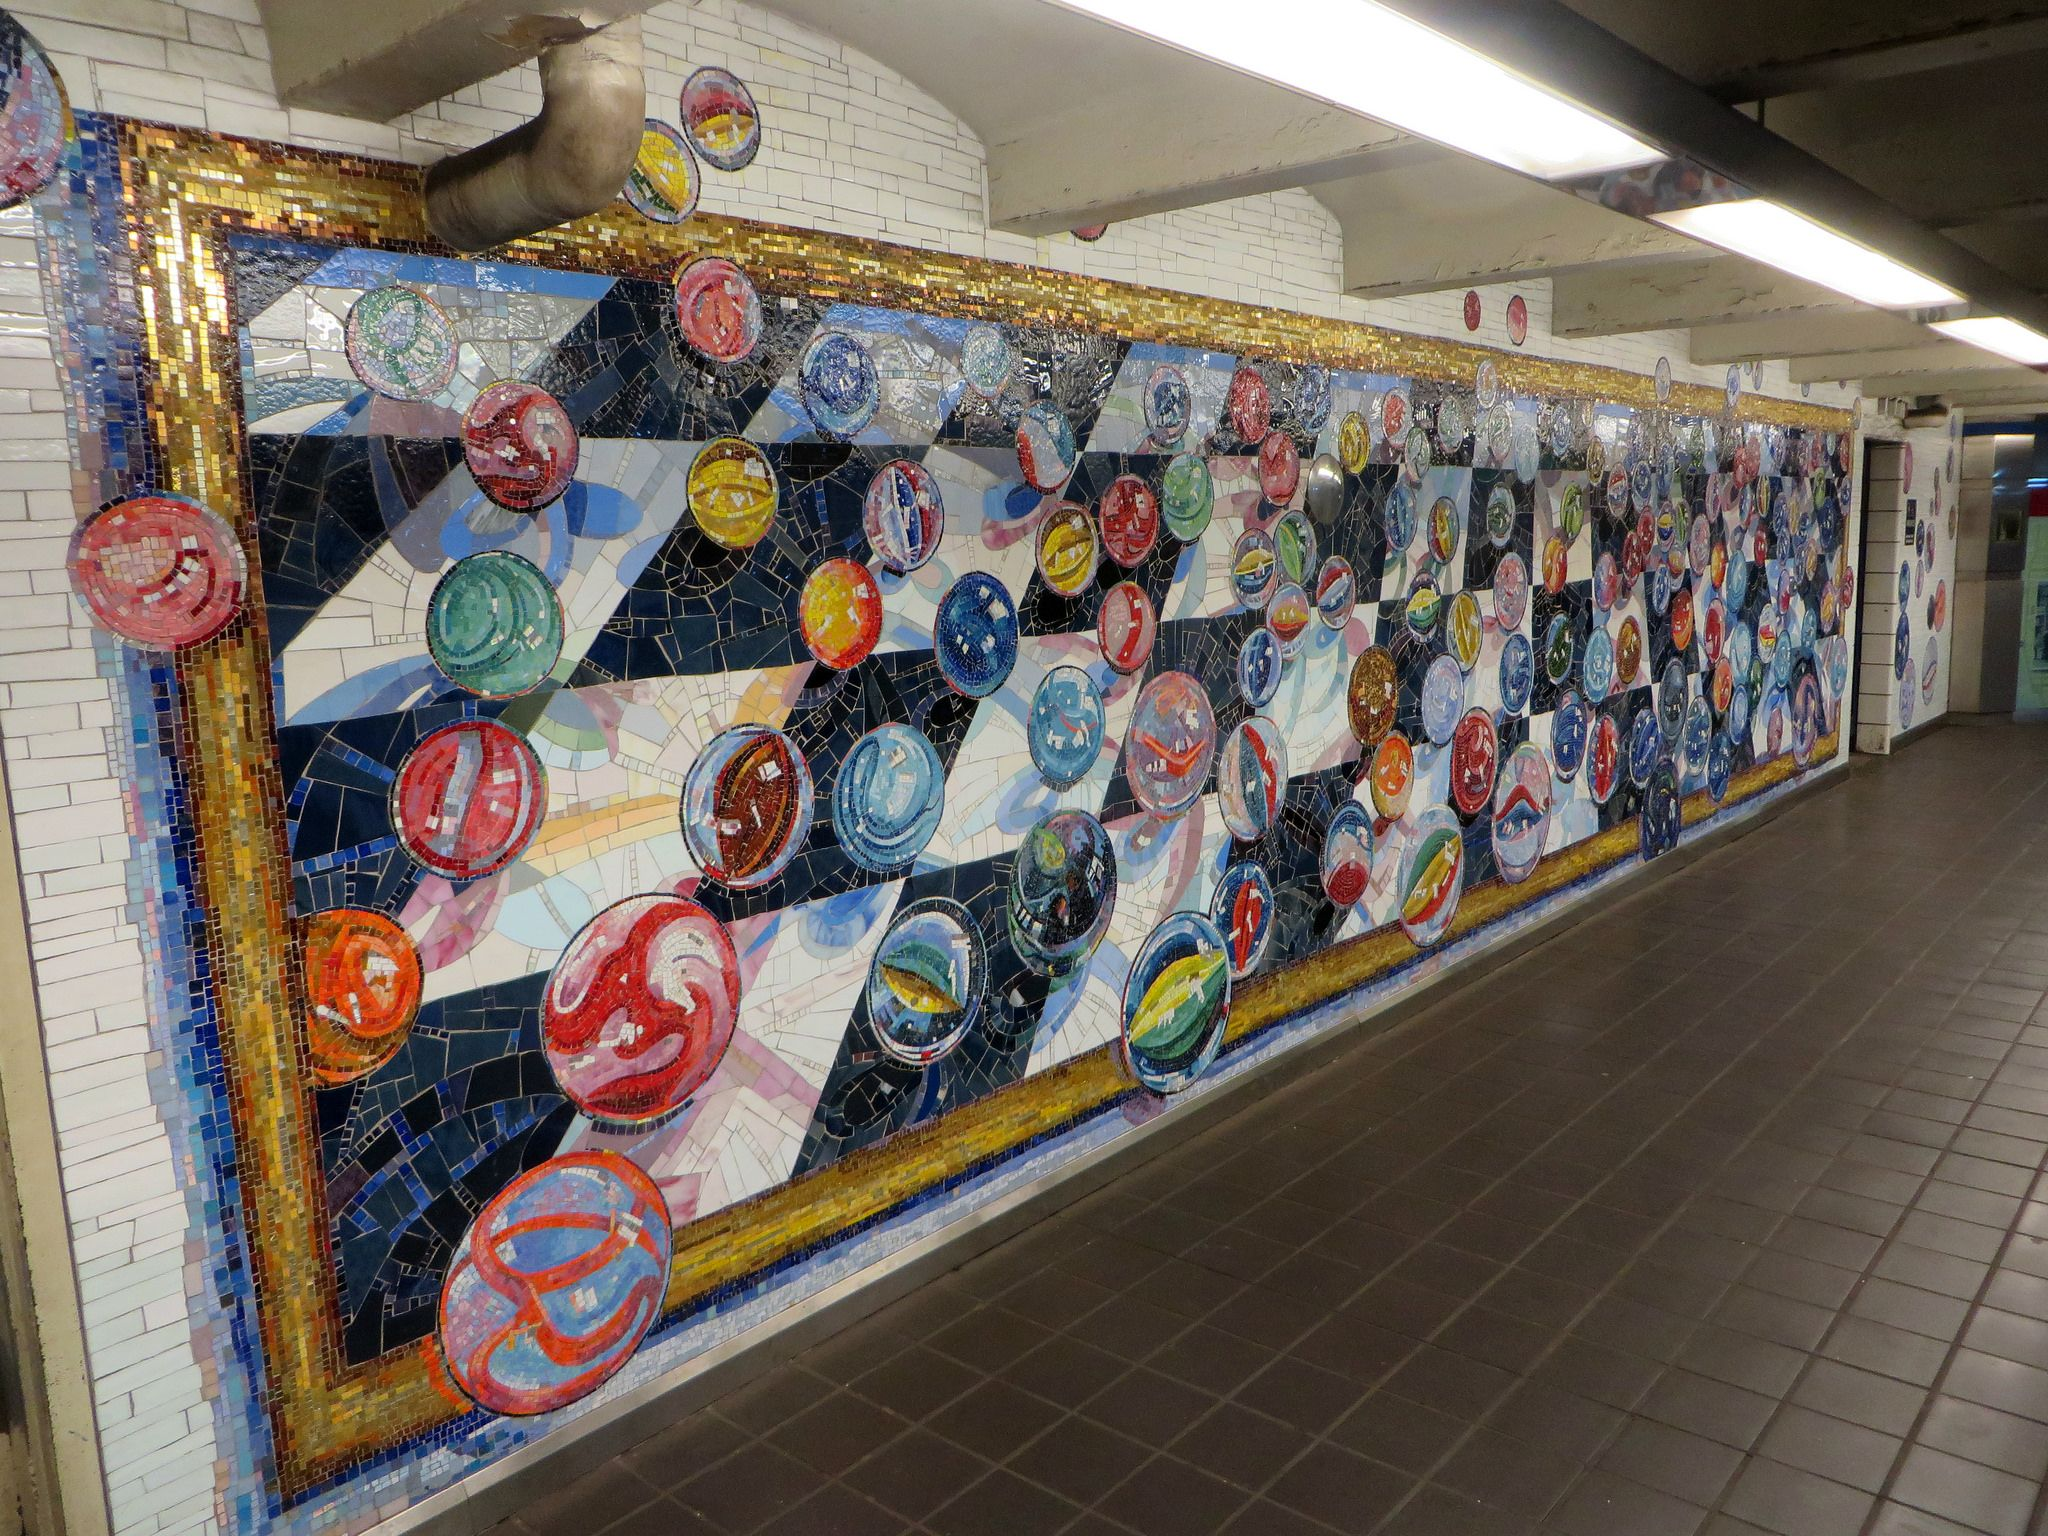 West 42nd Street and 8th avenue subway art